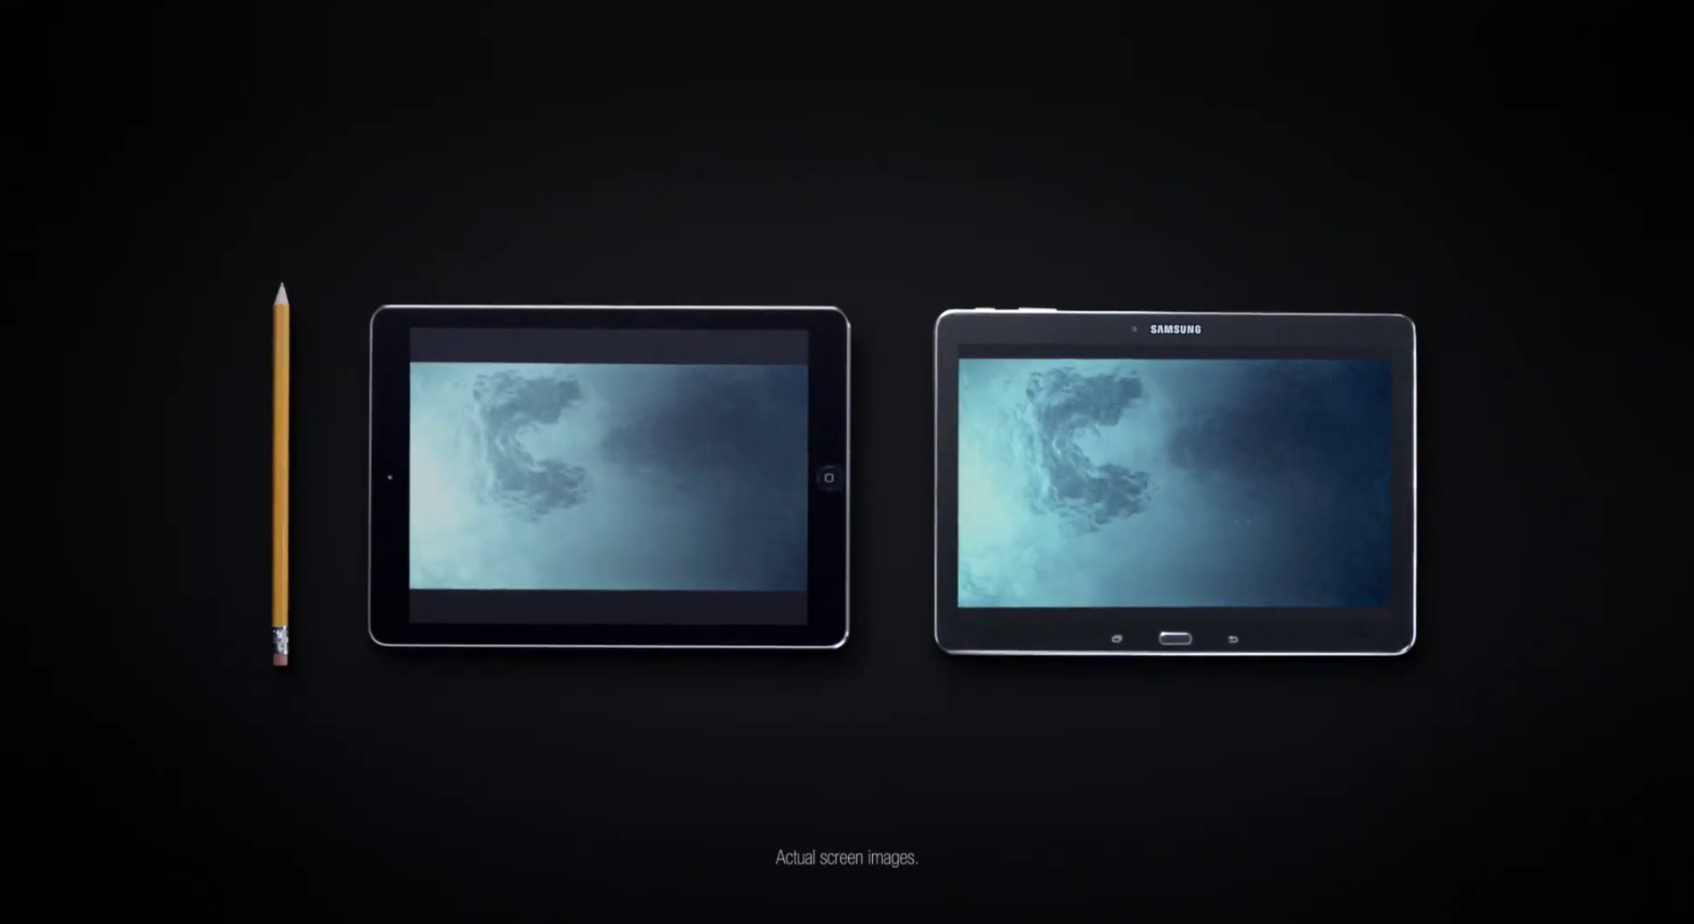 Comercial do Galaxy Tab Pro 10.1